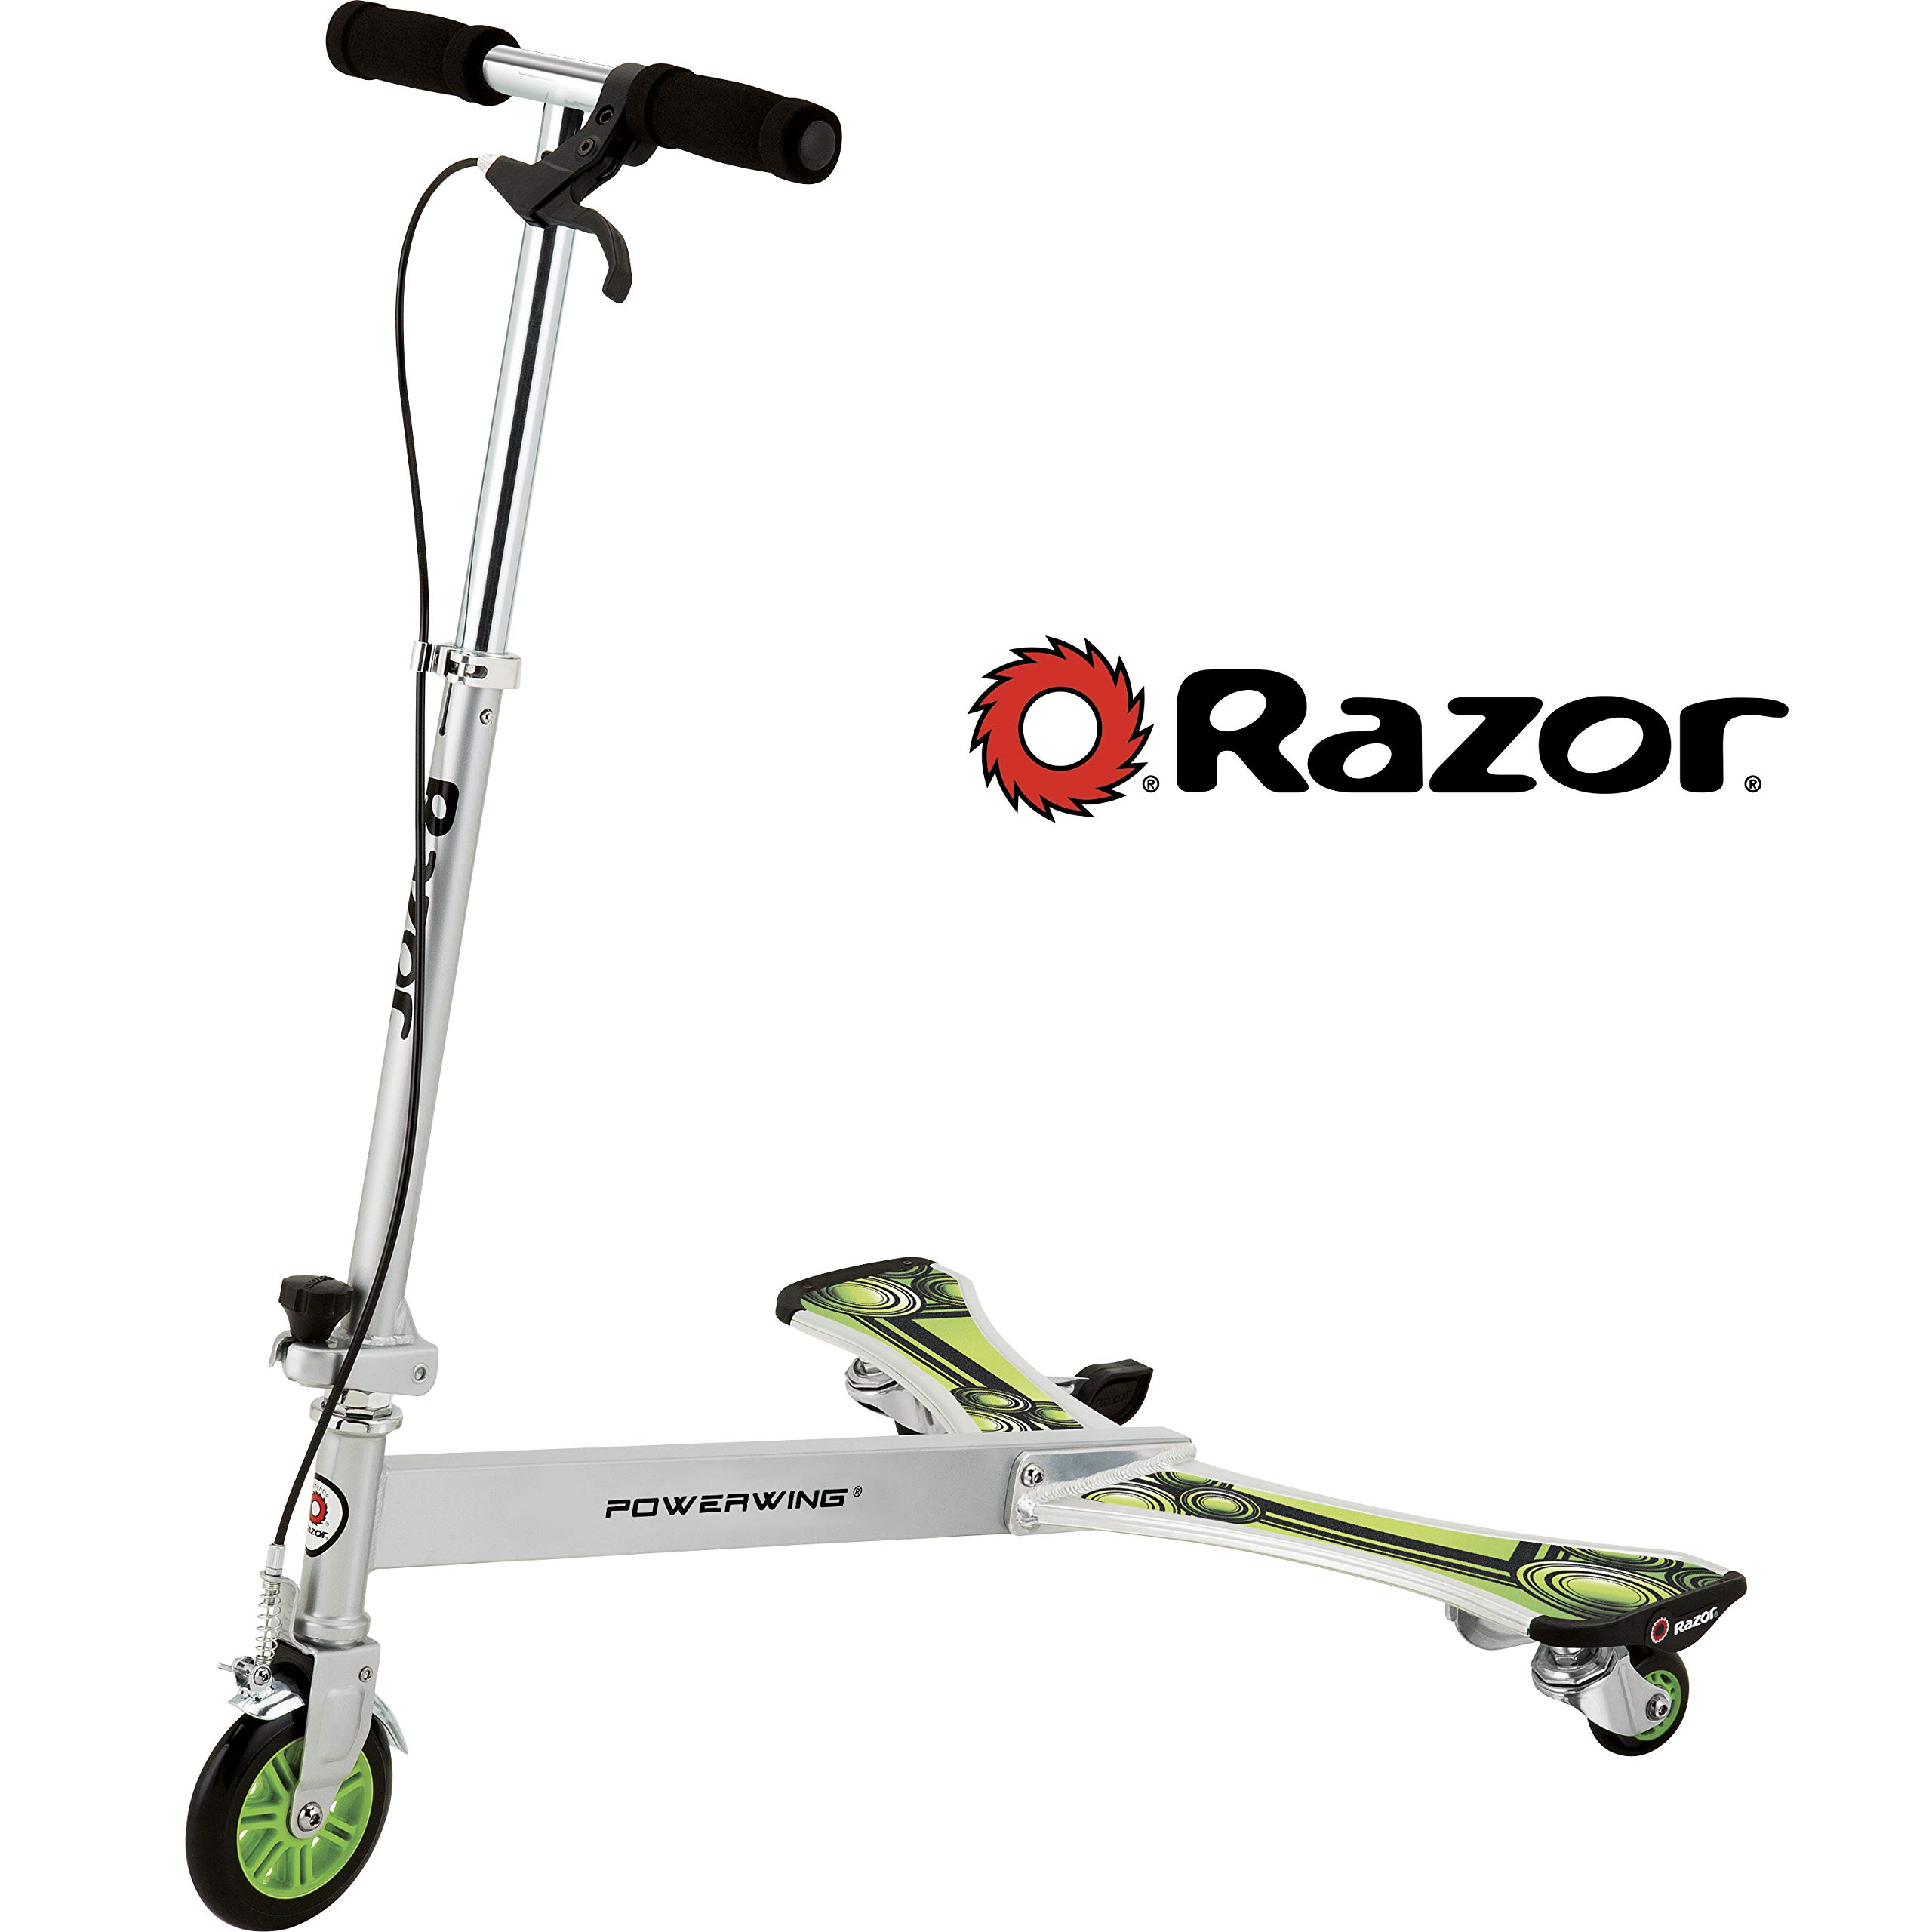 Razor PowerWing DLX Caster Scooter - Silver/Green by Razor